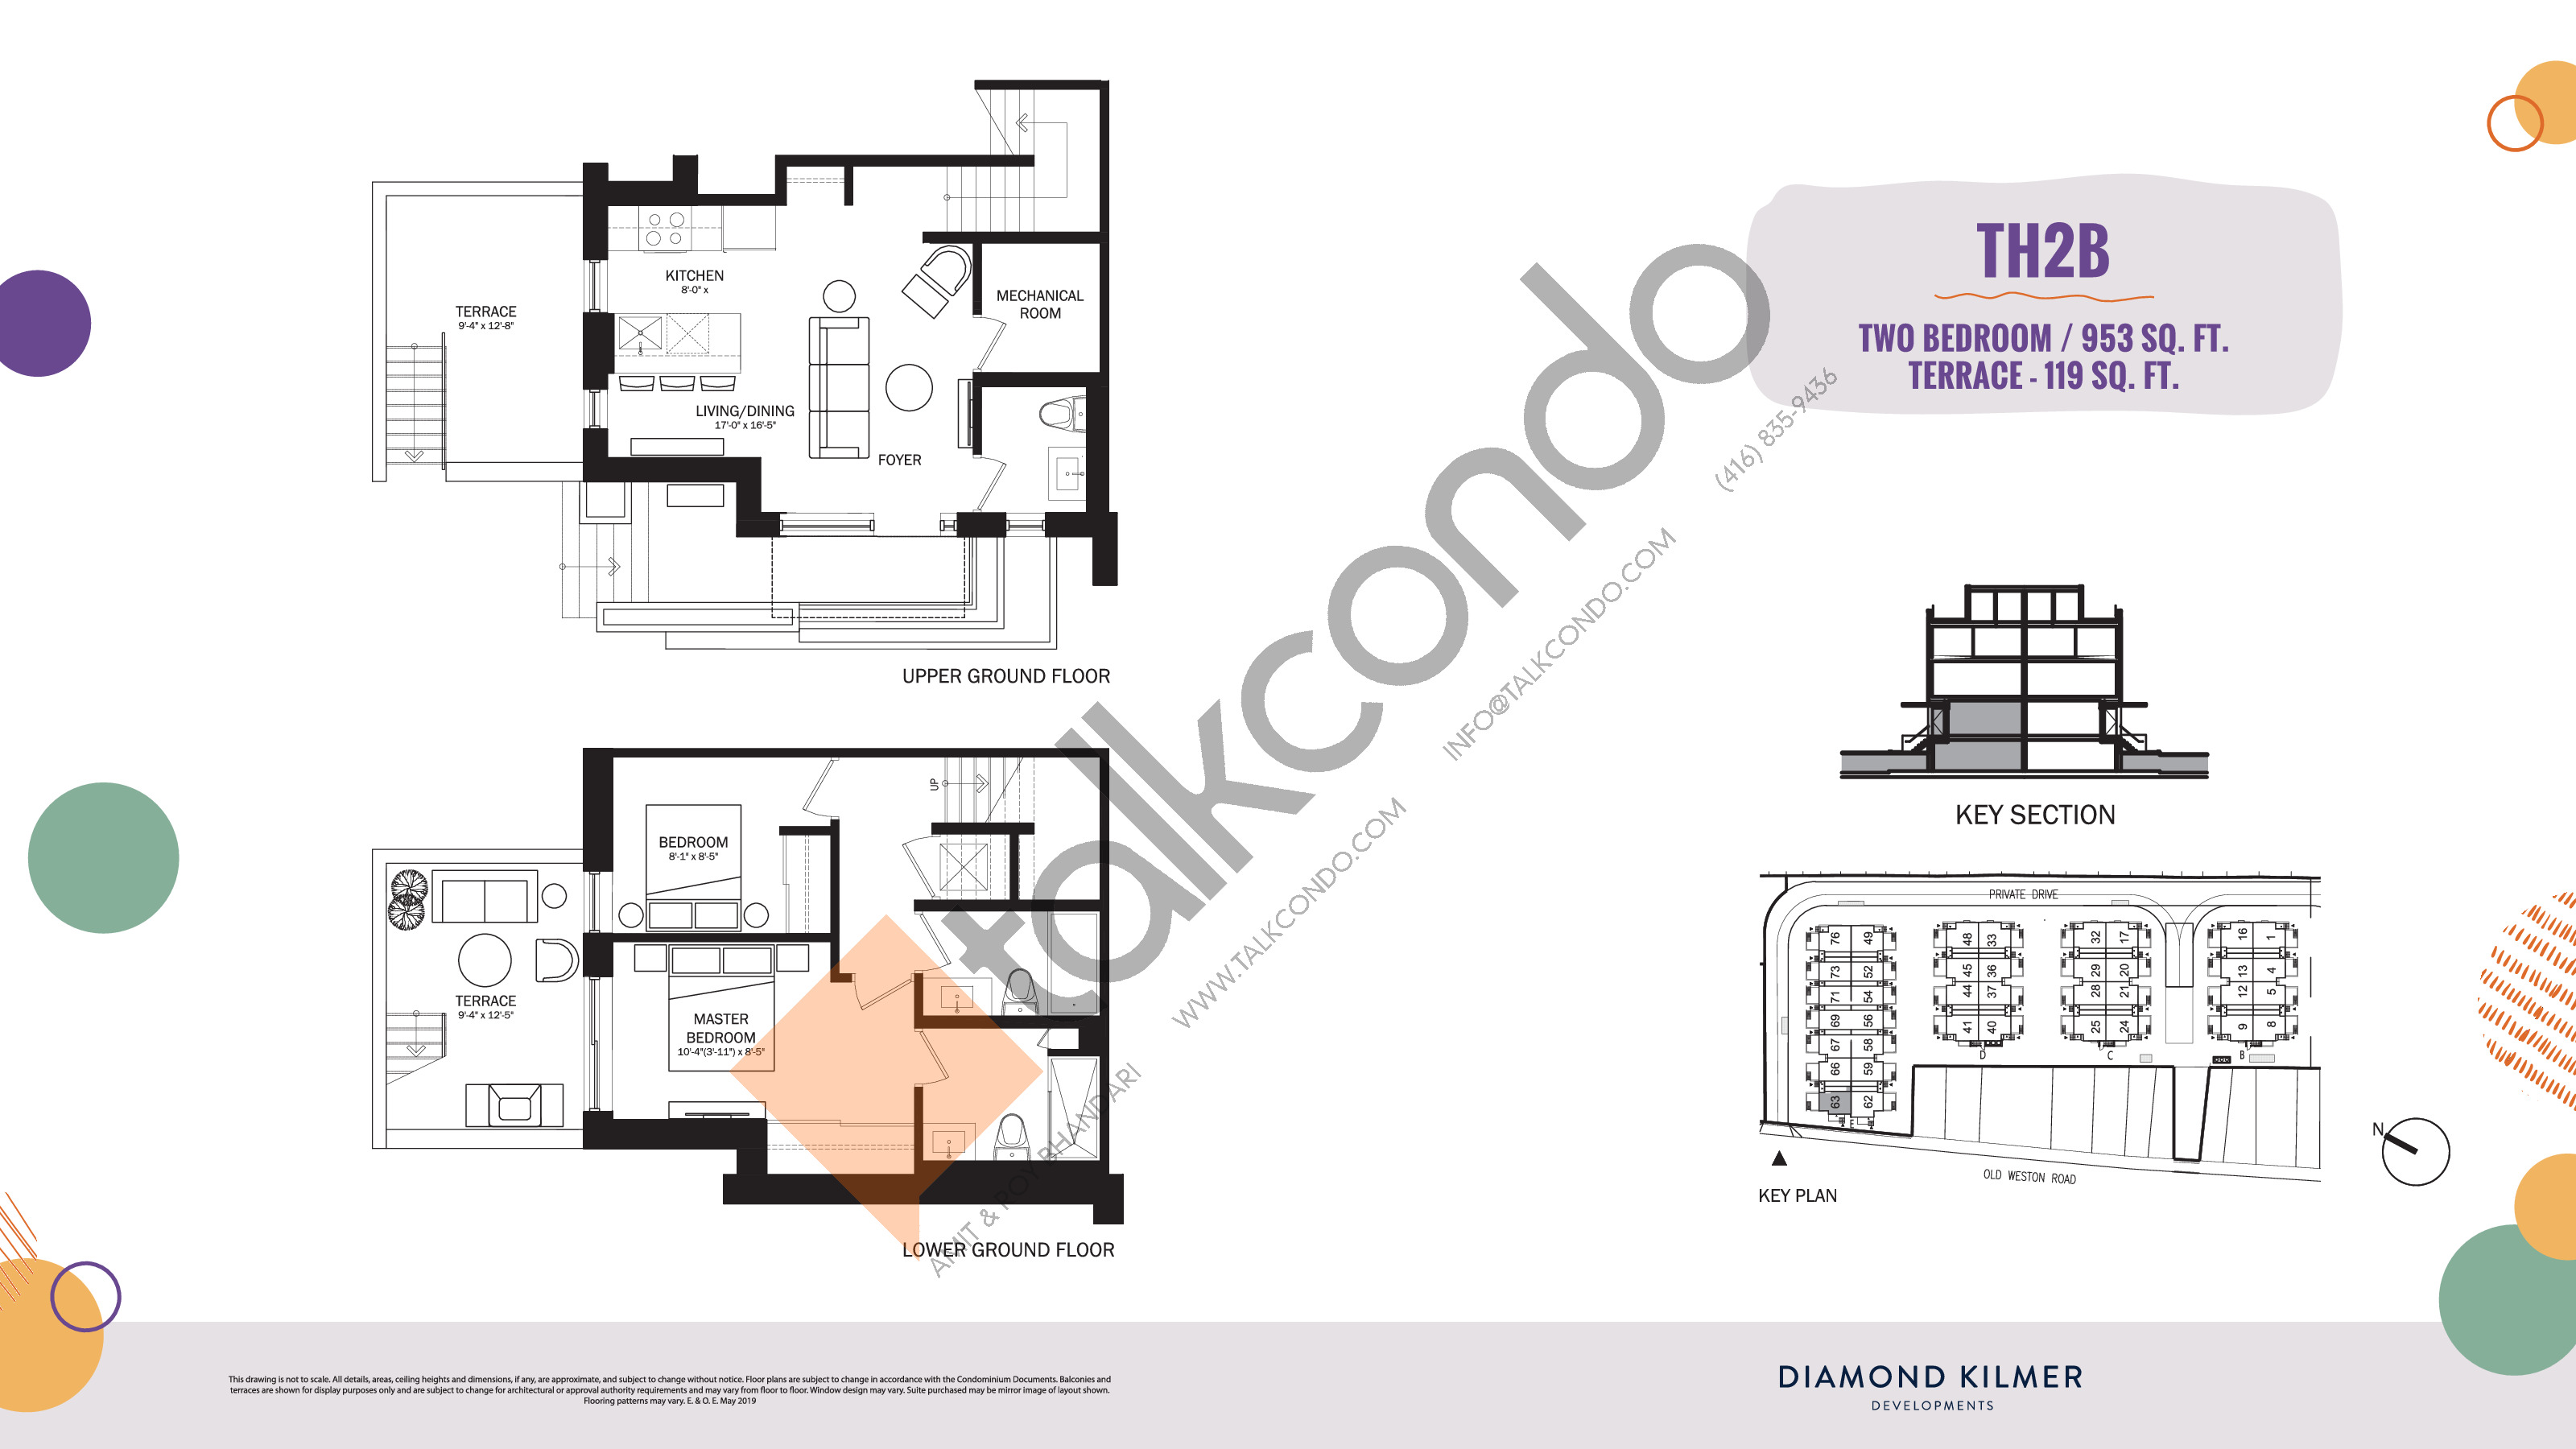 TH2B Floor Plan at Reunion Crossing Condos & Urban Towns - 953 sq.ft